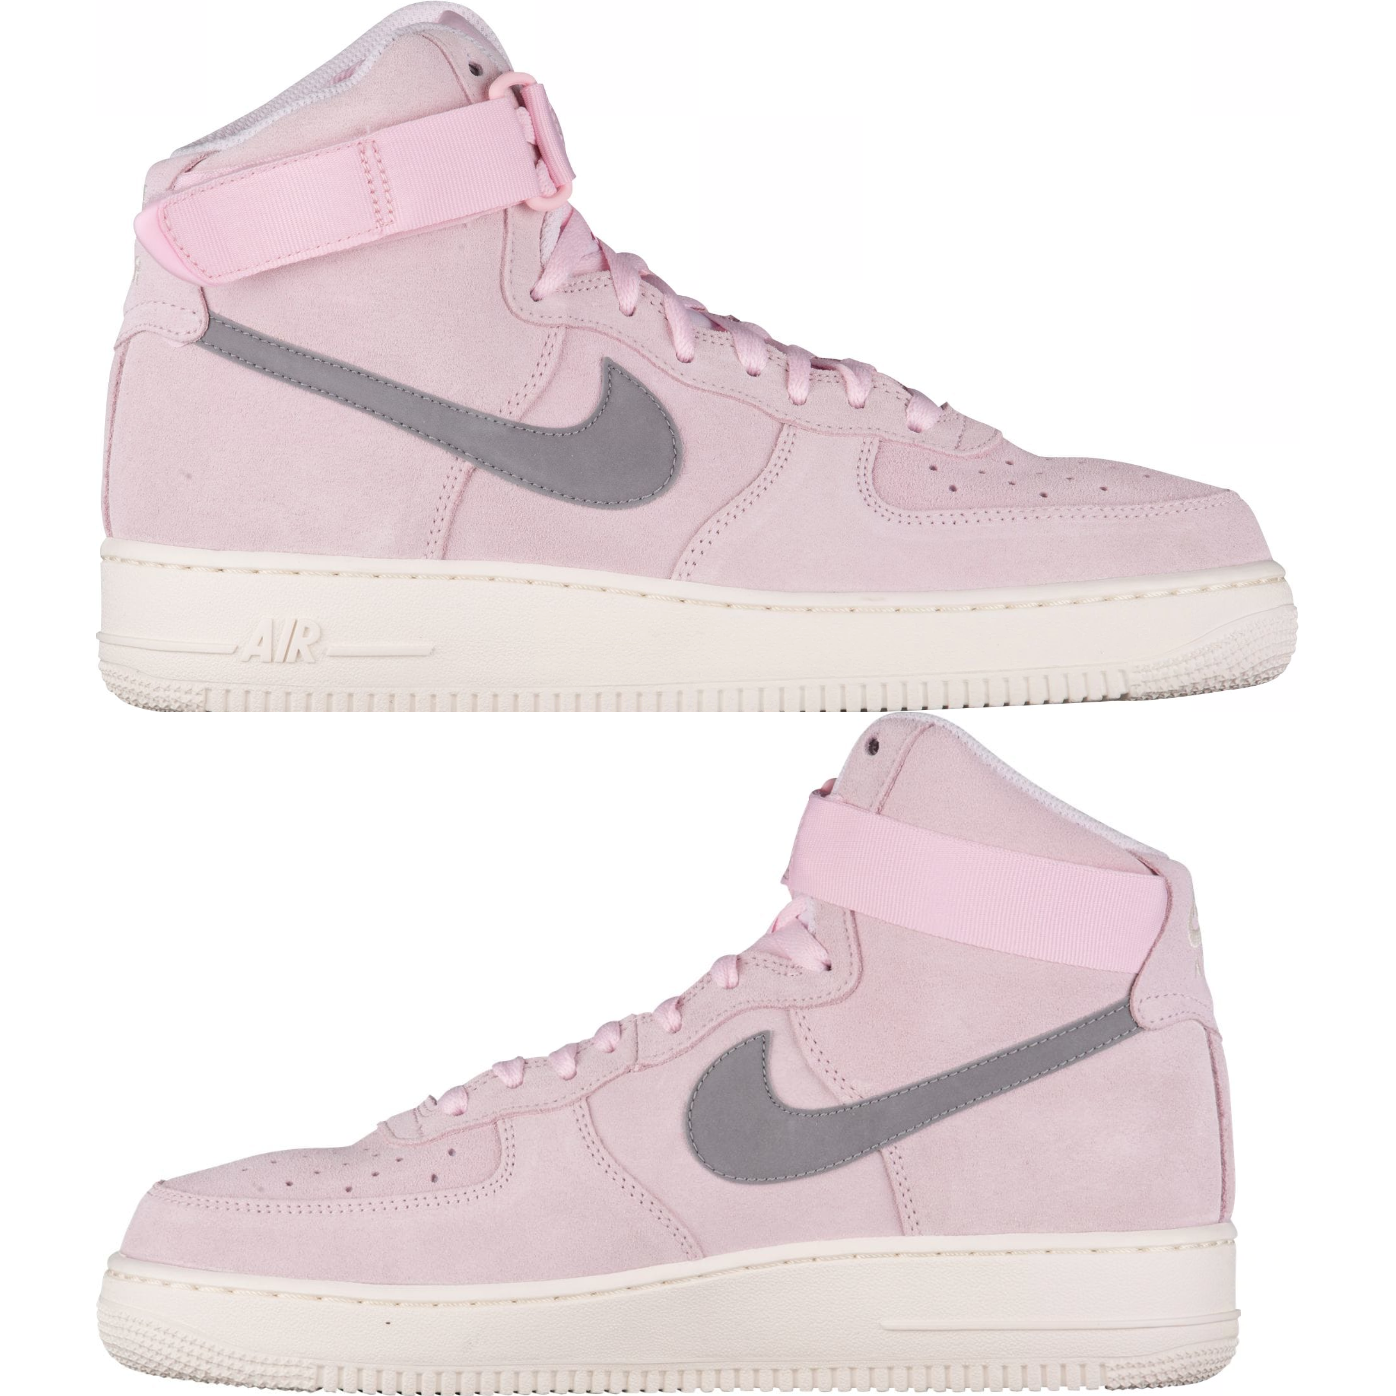 NIKE AIR FORCE 1 HIGH 07 MEN'S LIFESTYLE COMFY SHOES Pink/Dust/Sail 315121-611